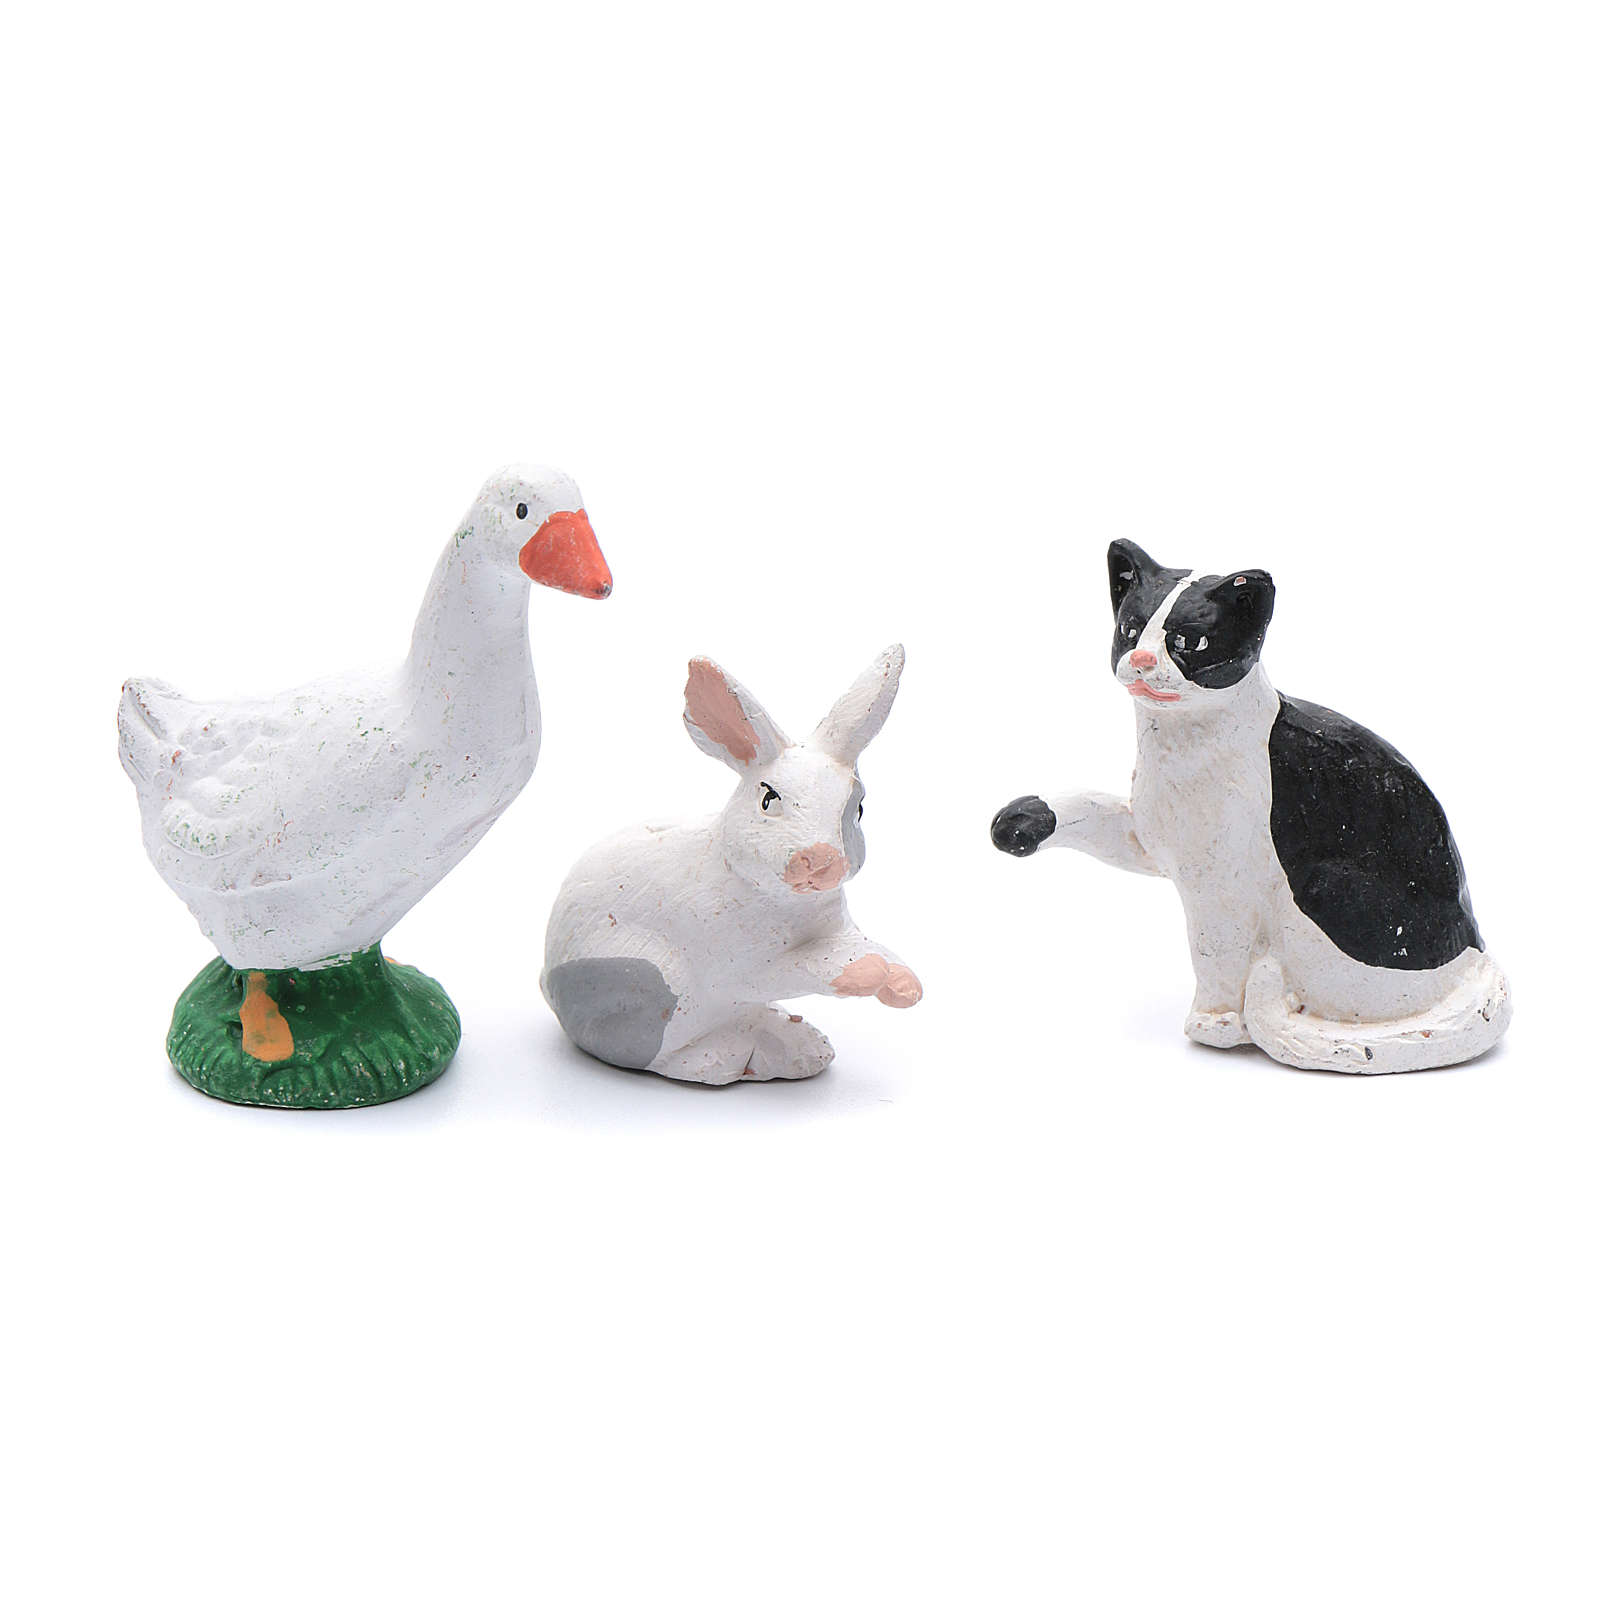 Kit with 5 animal items for DIY nativity scene 12 cm 4